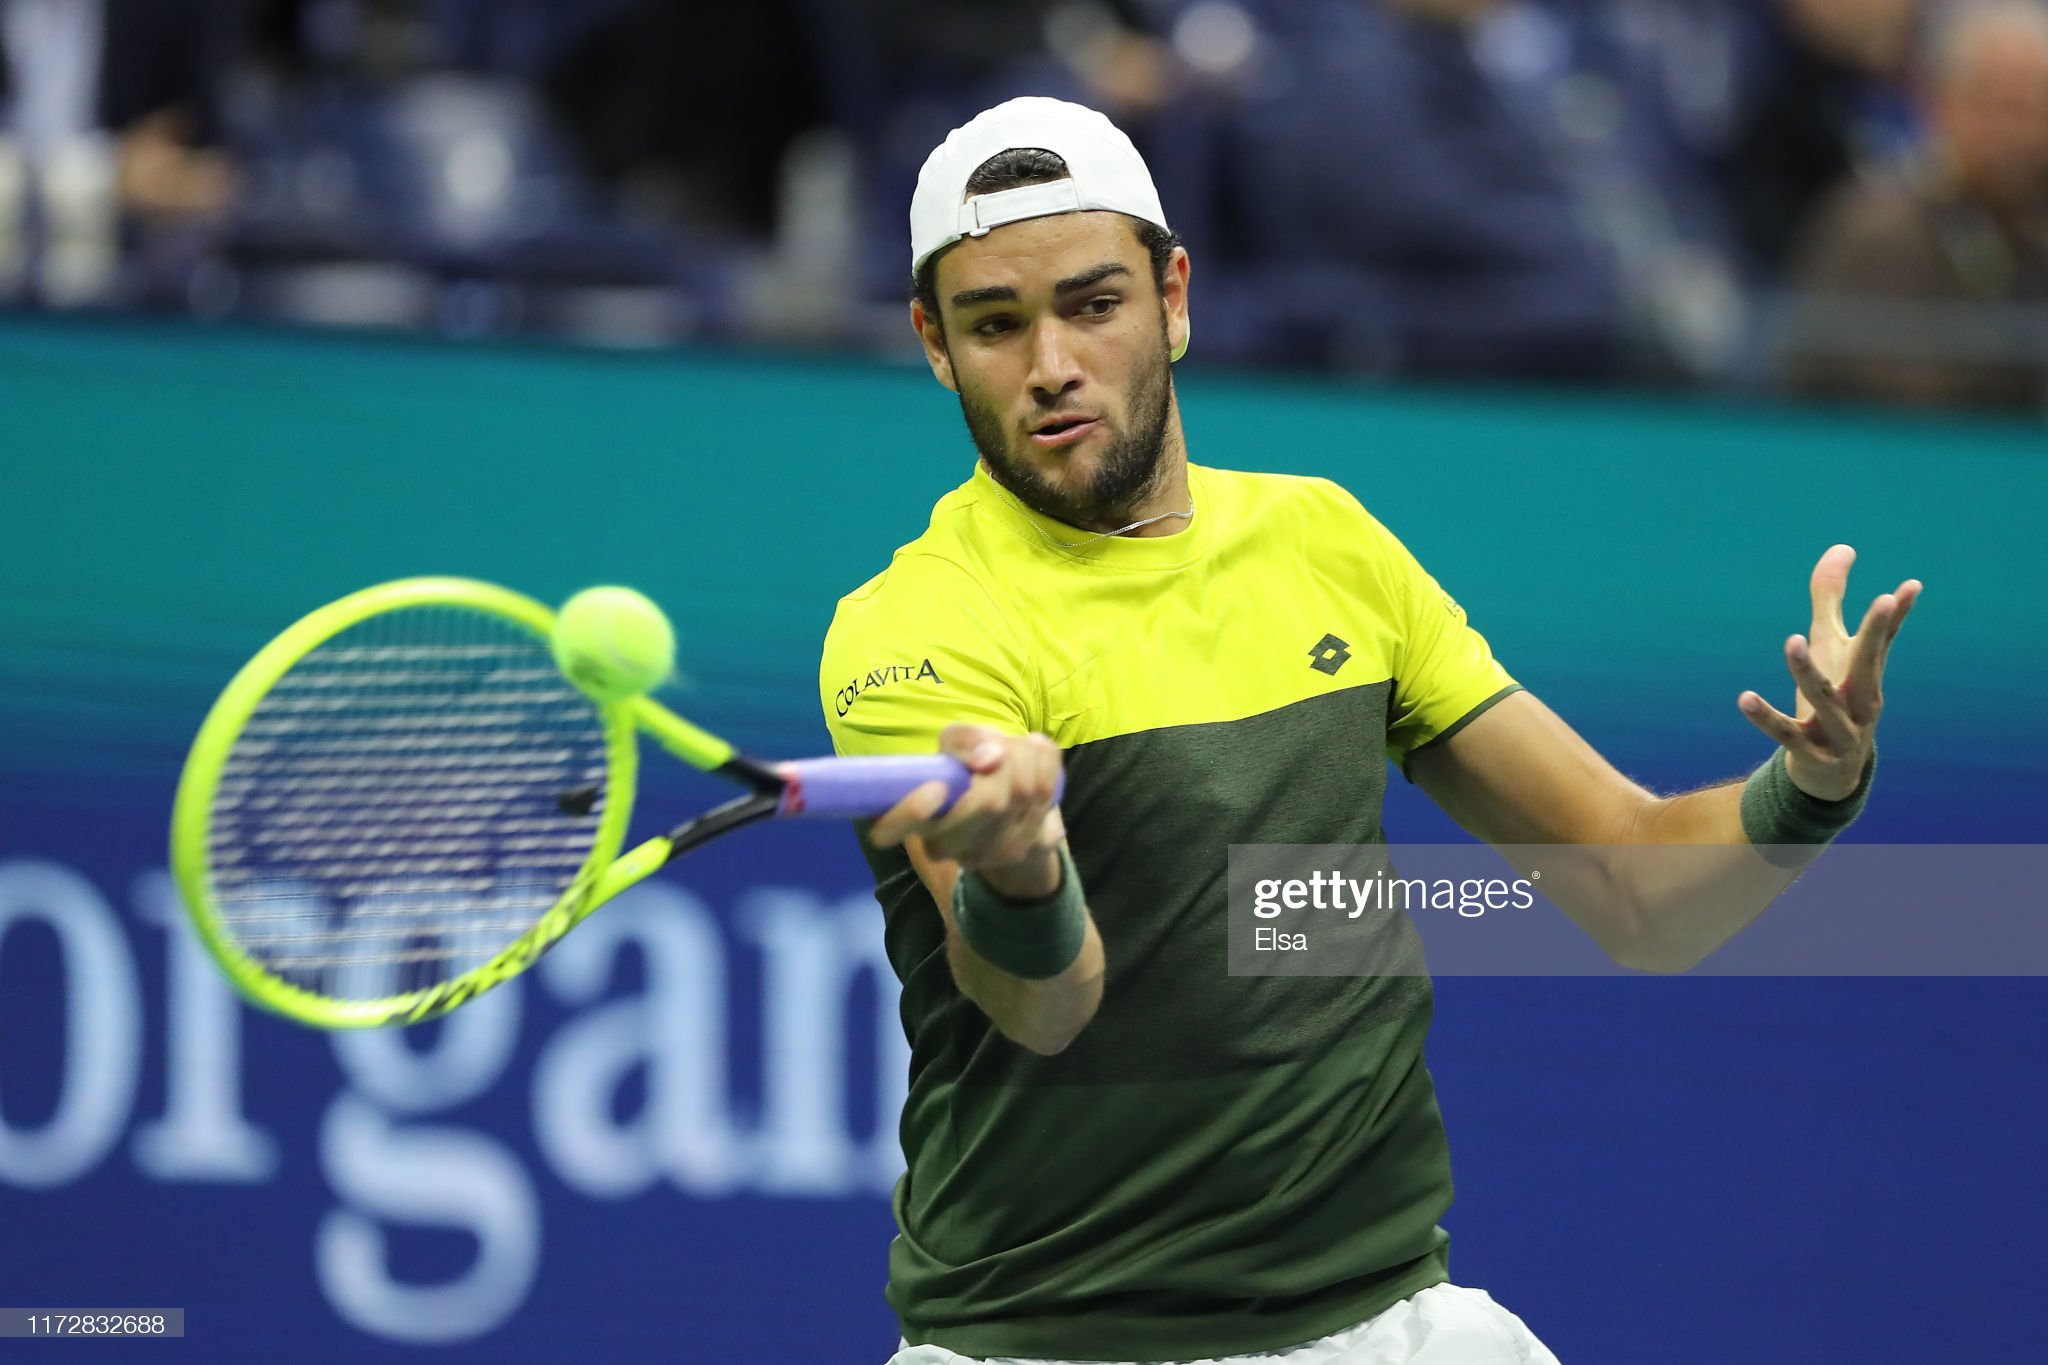 ¿Cuánto mide Matteo Berrettini? - Altura - Real height Matteo-berrettini-of-italy-returns-a-shot-during-his-mens-singles-picture-id1172832688?s=2048x2048